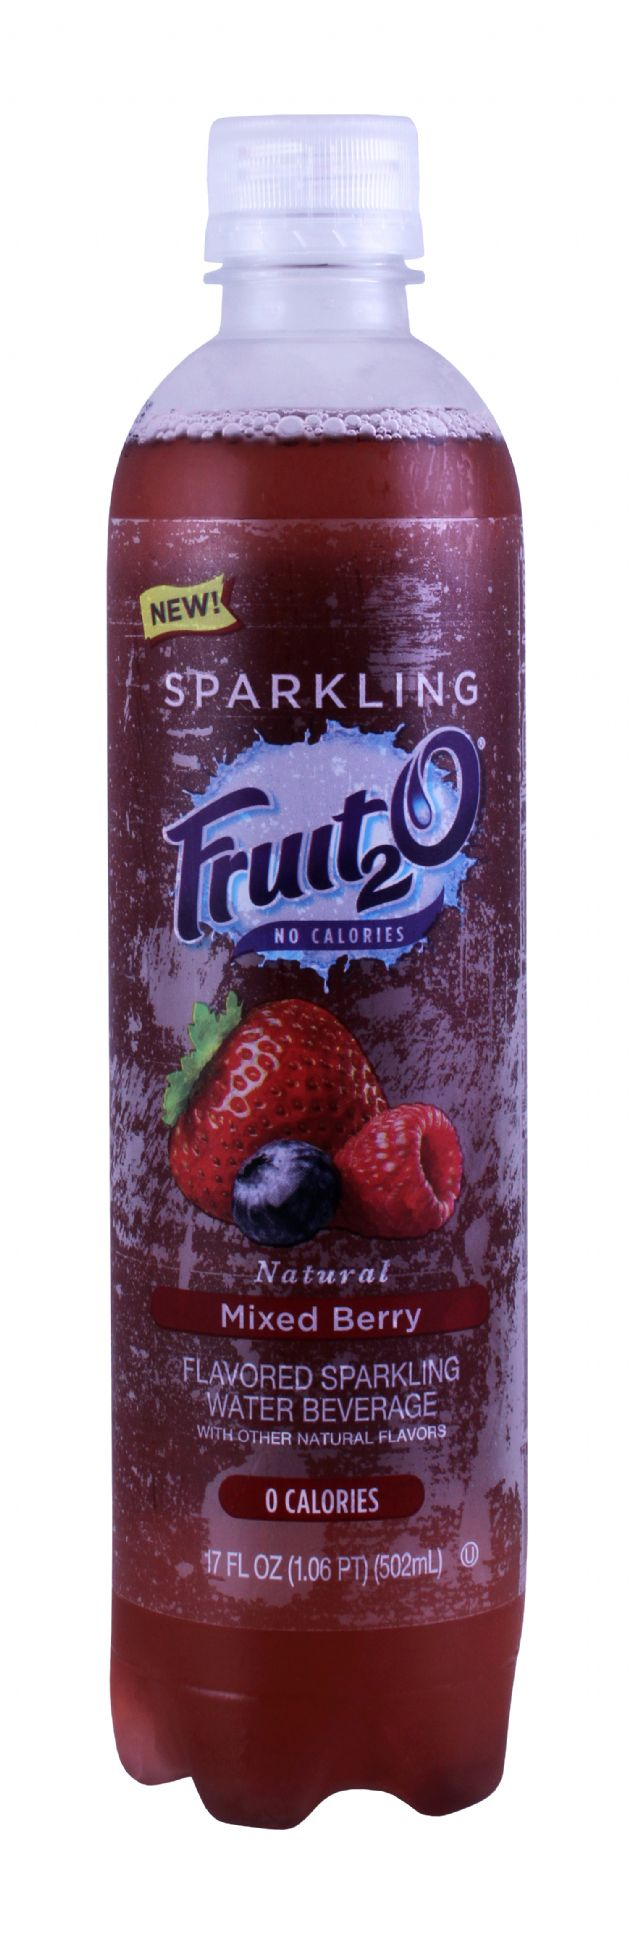 Sparkling Fruit2O: Fruit20 MixedBerry Front